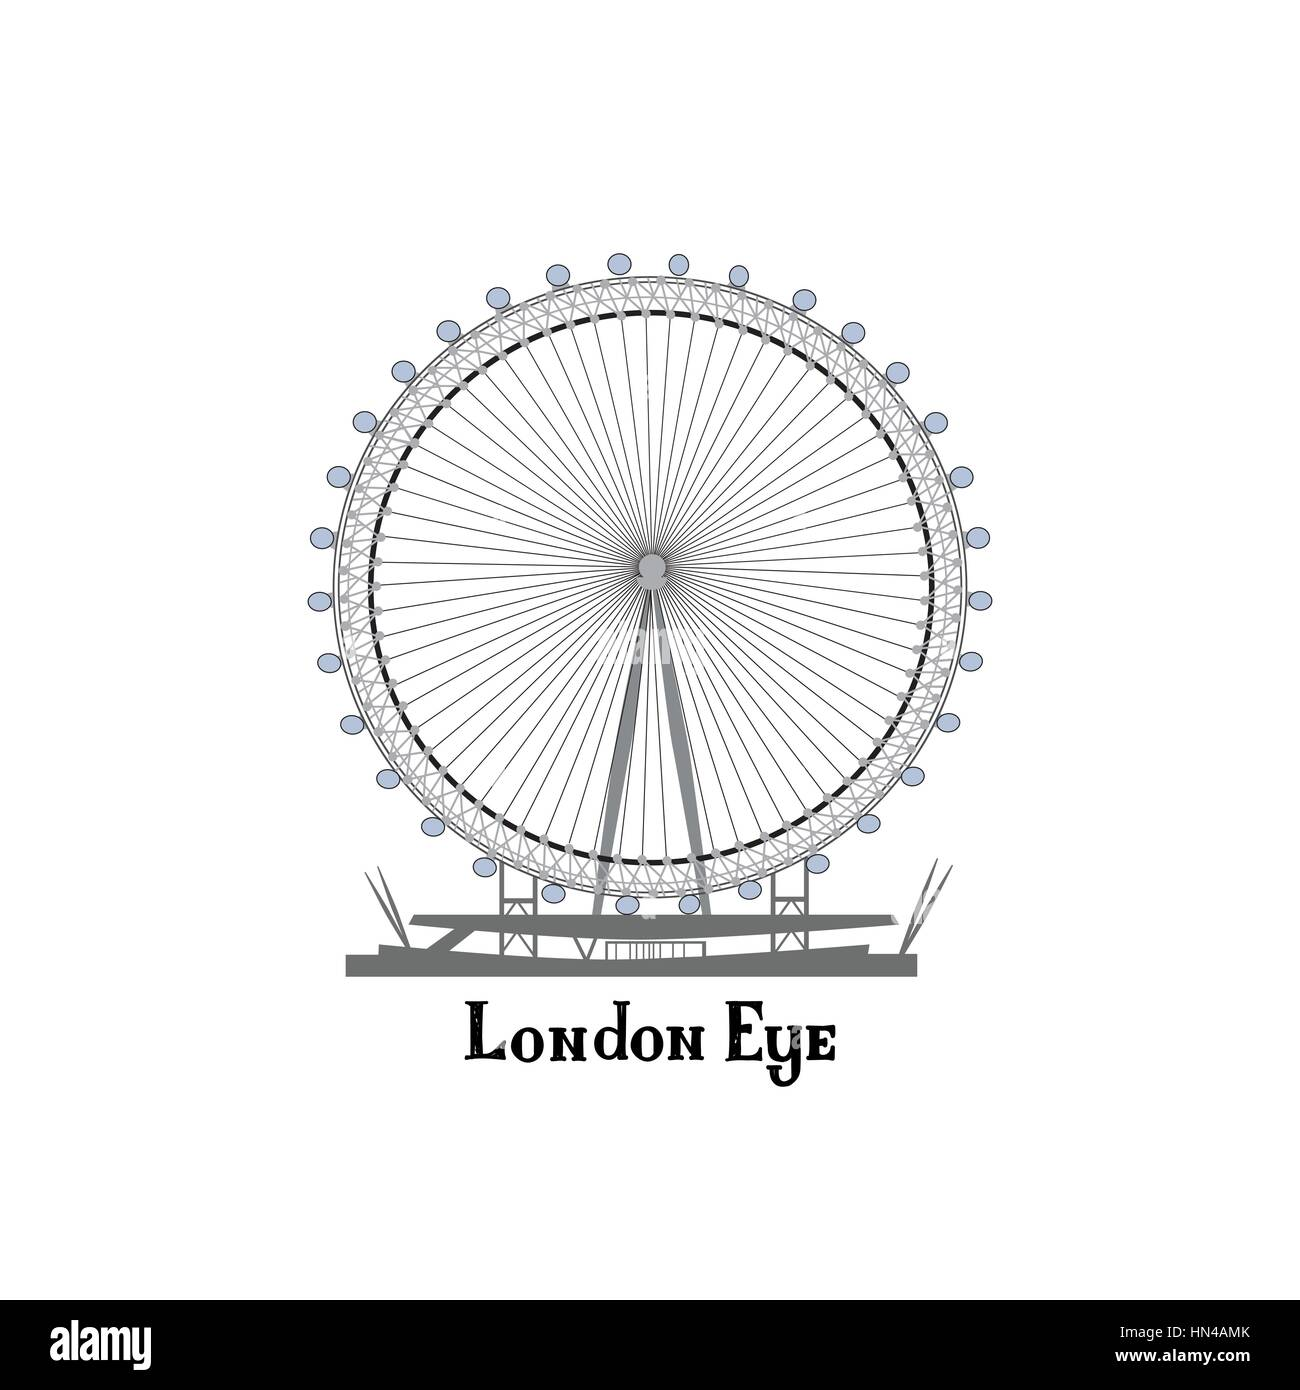 Travel London city famous place. English  landmark London Eye sightseeing The Great Britain background design element. - Stock Image